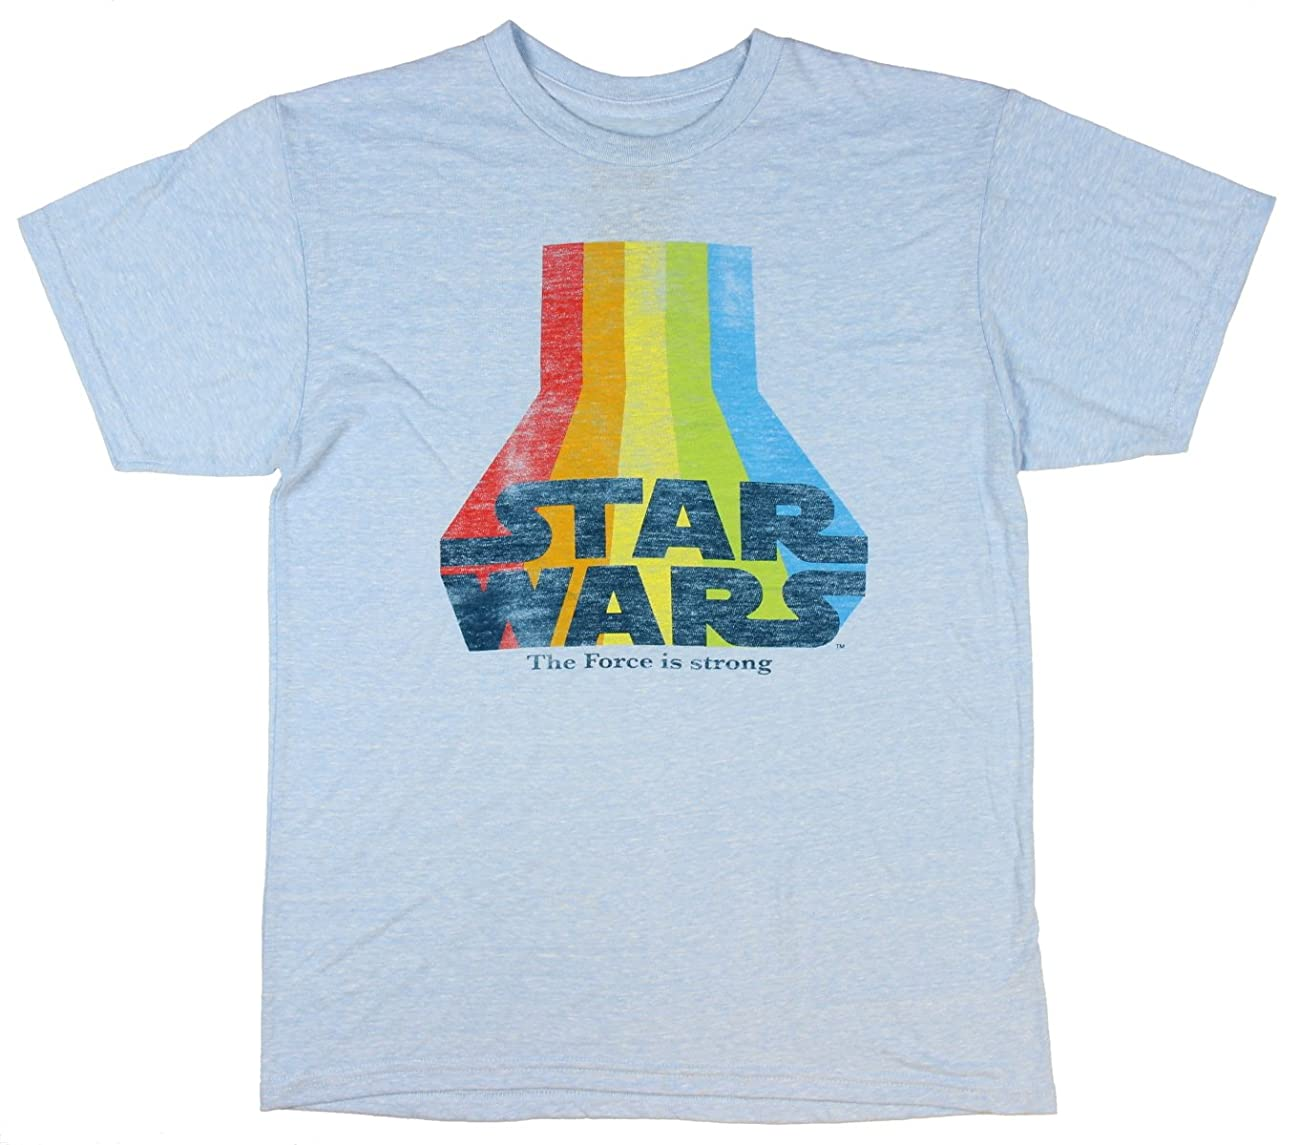 Star Wars The Force Is Strong Vintage Logo Graphic T-Shirt 0